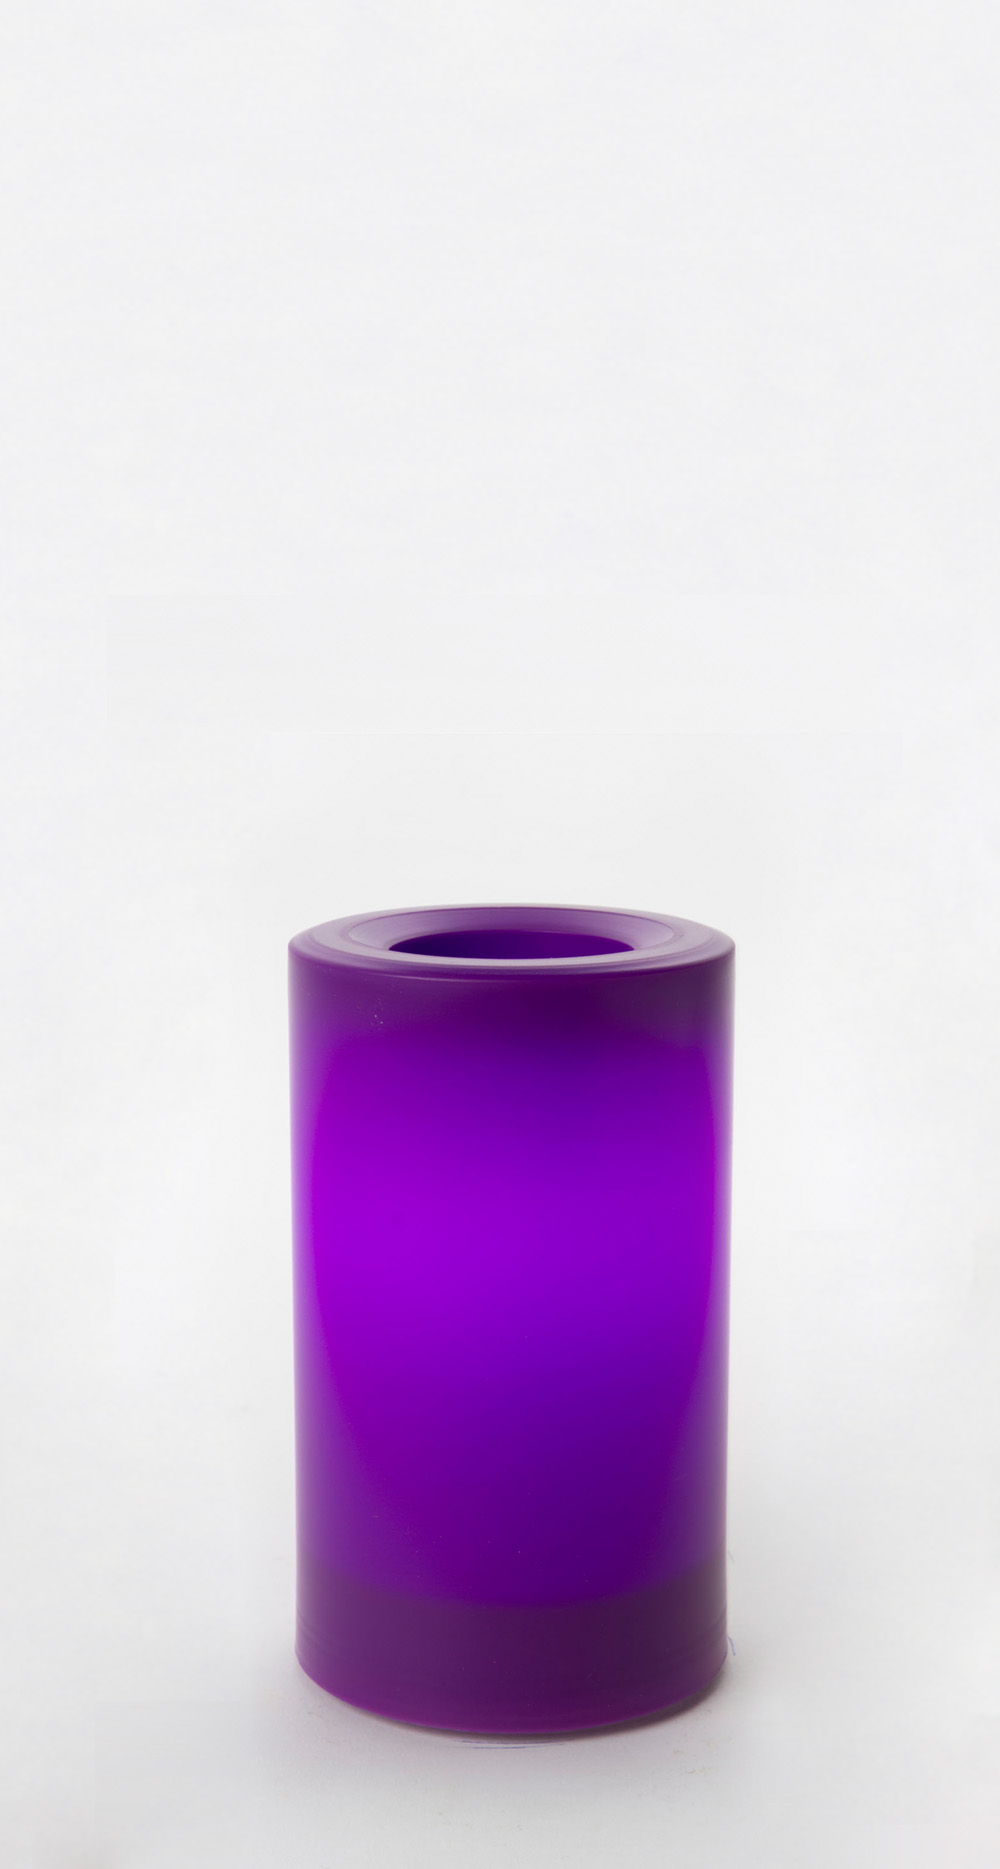 5 Inch Flameless Outdoor Pillar Candle with Timer - Purple